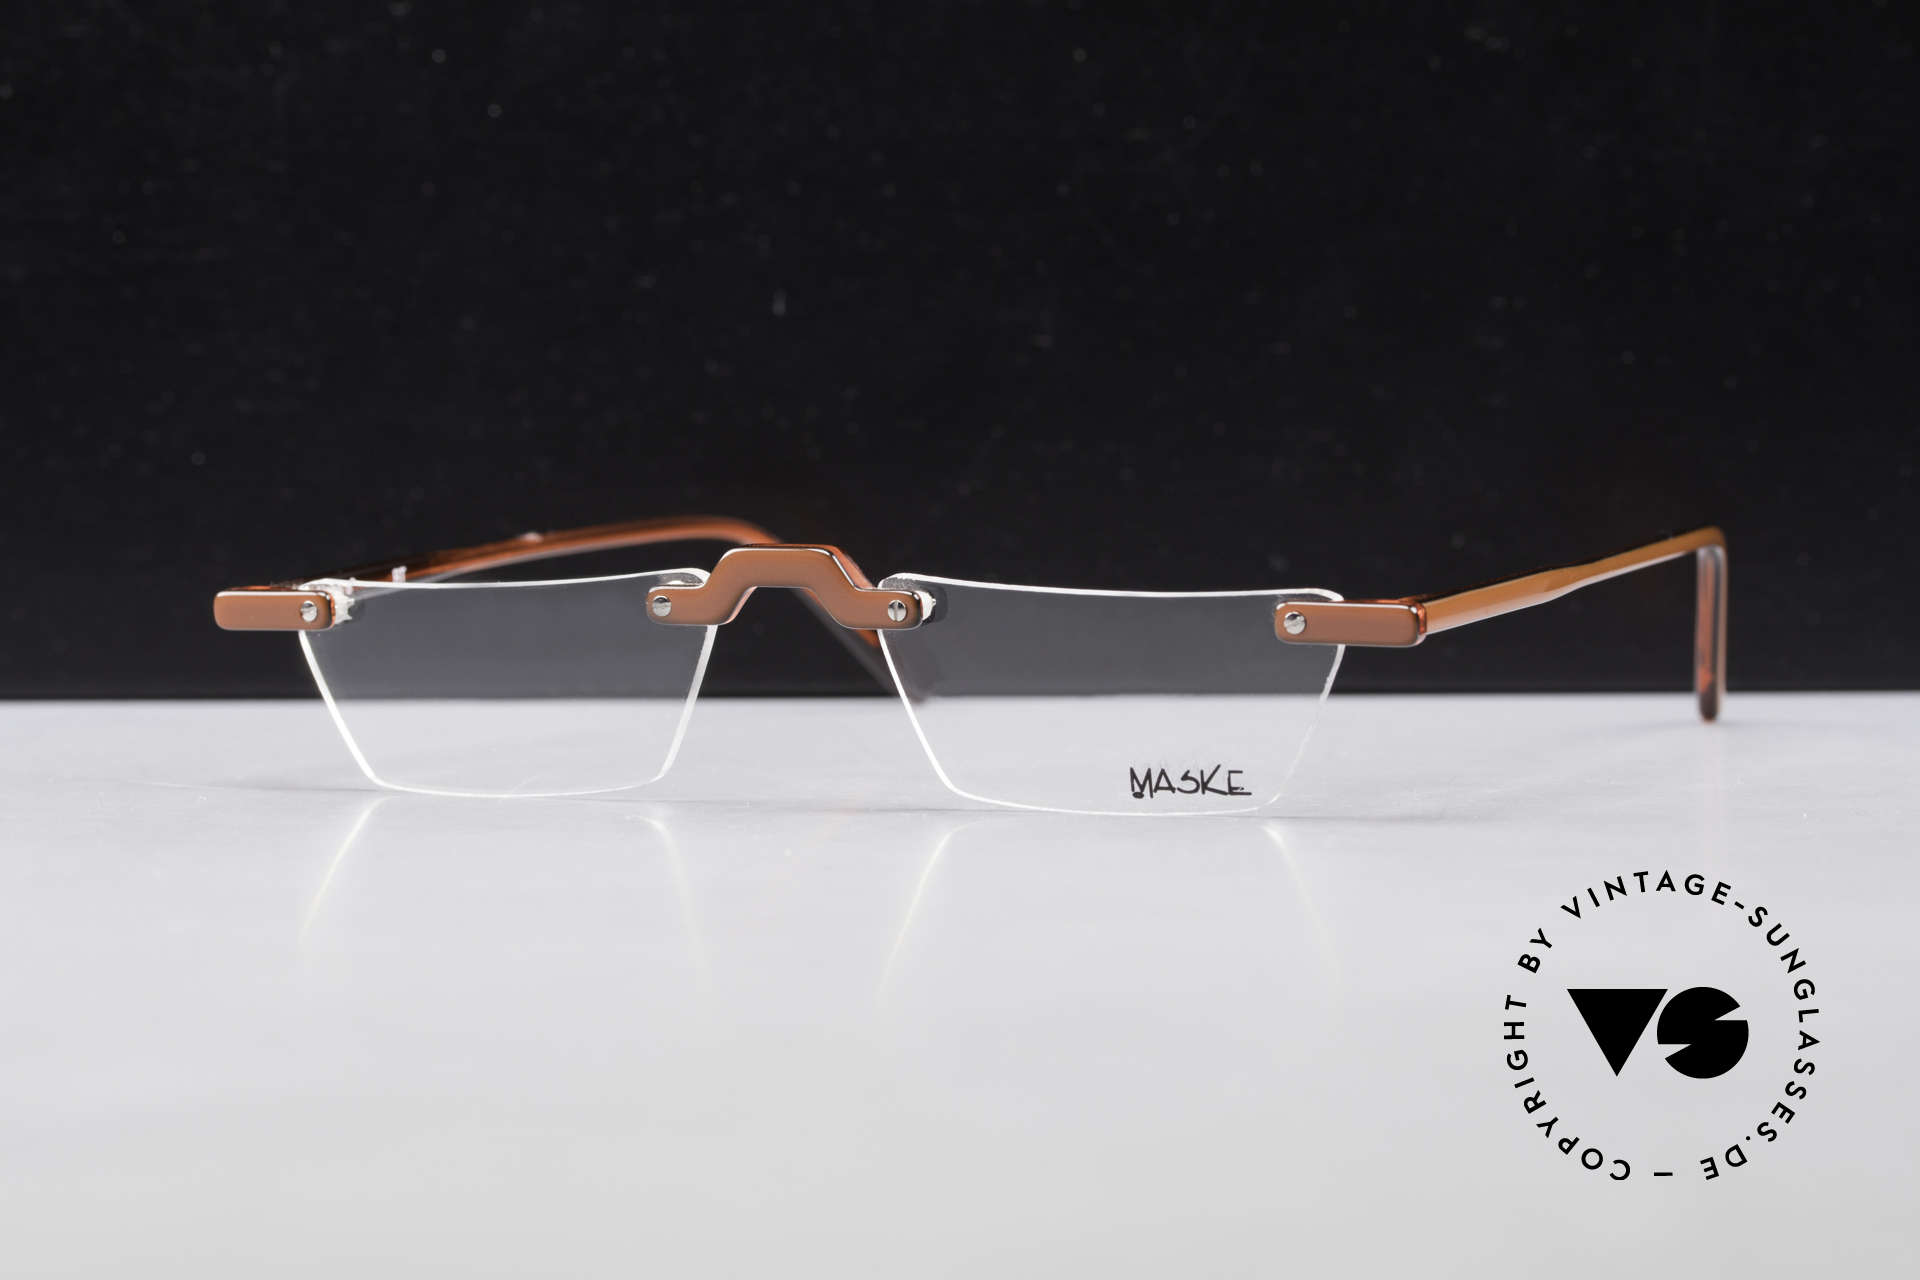 Design Maske Berlin Alpha 8 90's Designer Reading Glasses, functional and EYE-CATCHING, at the same time, Made for Men and Women